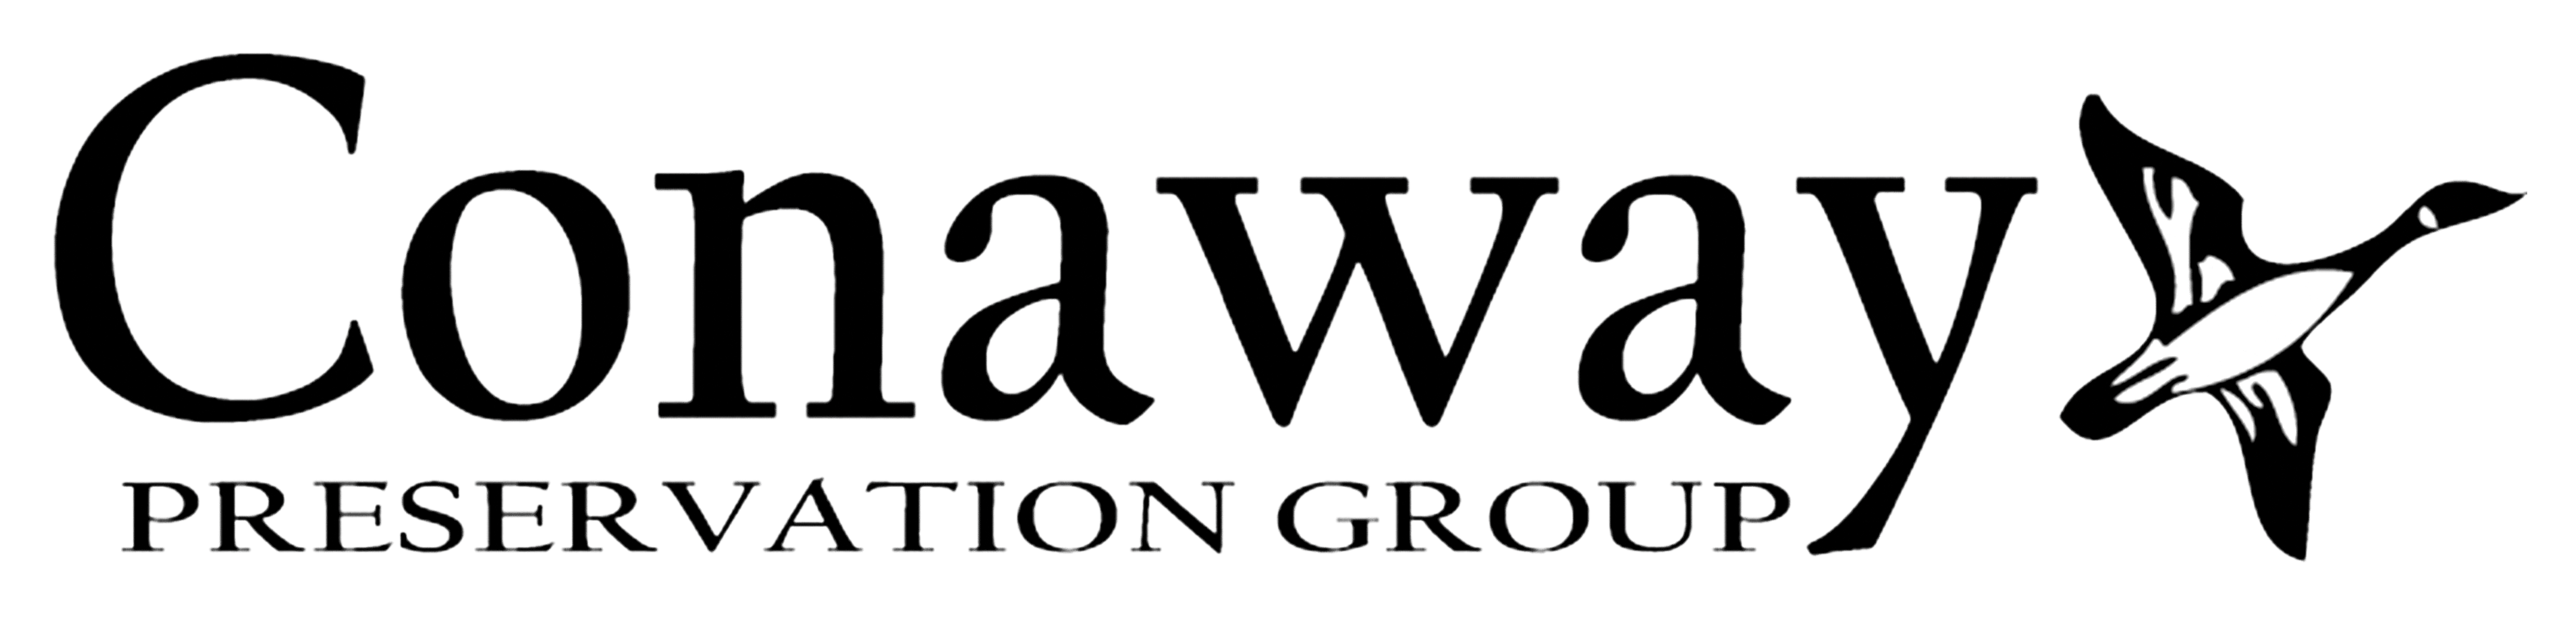 Conaway Preservation Group logo